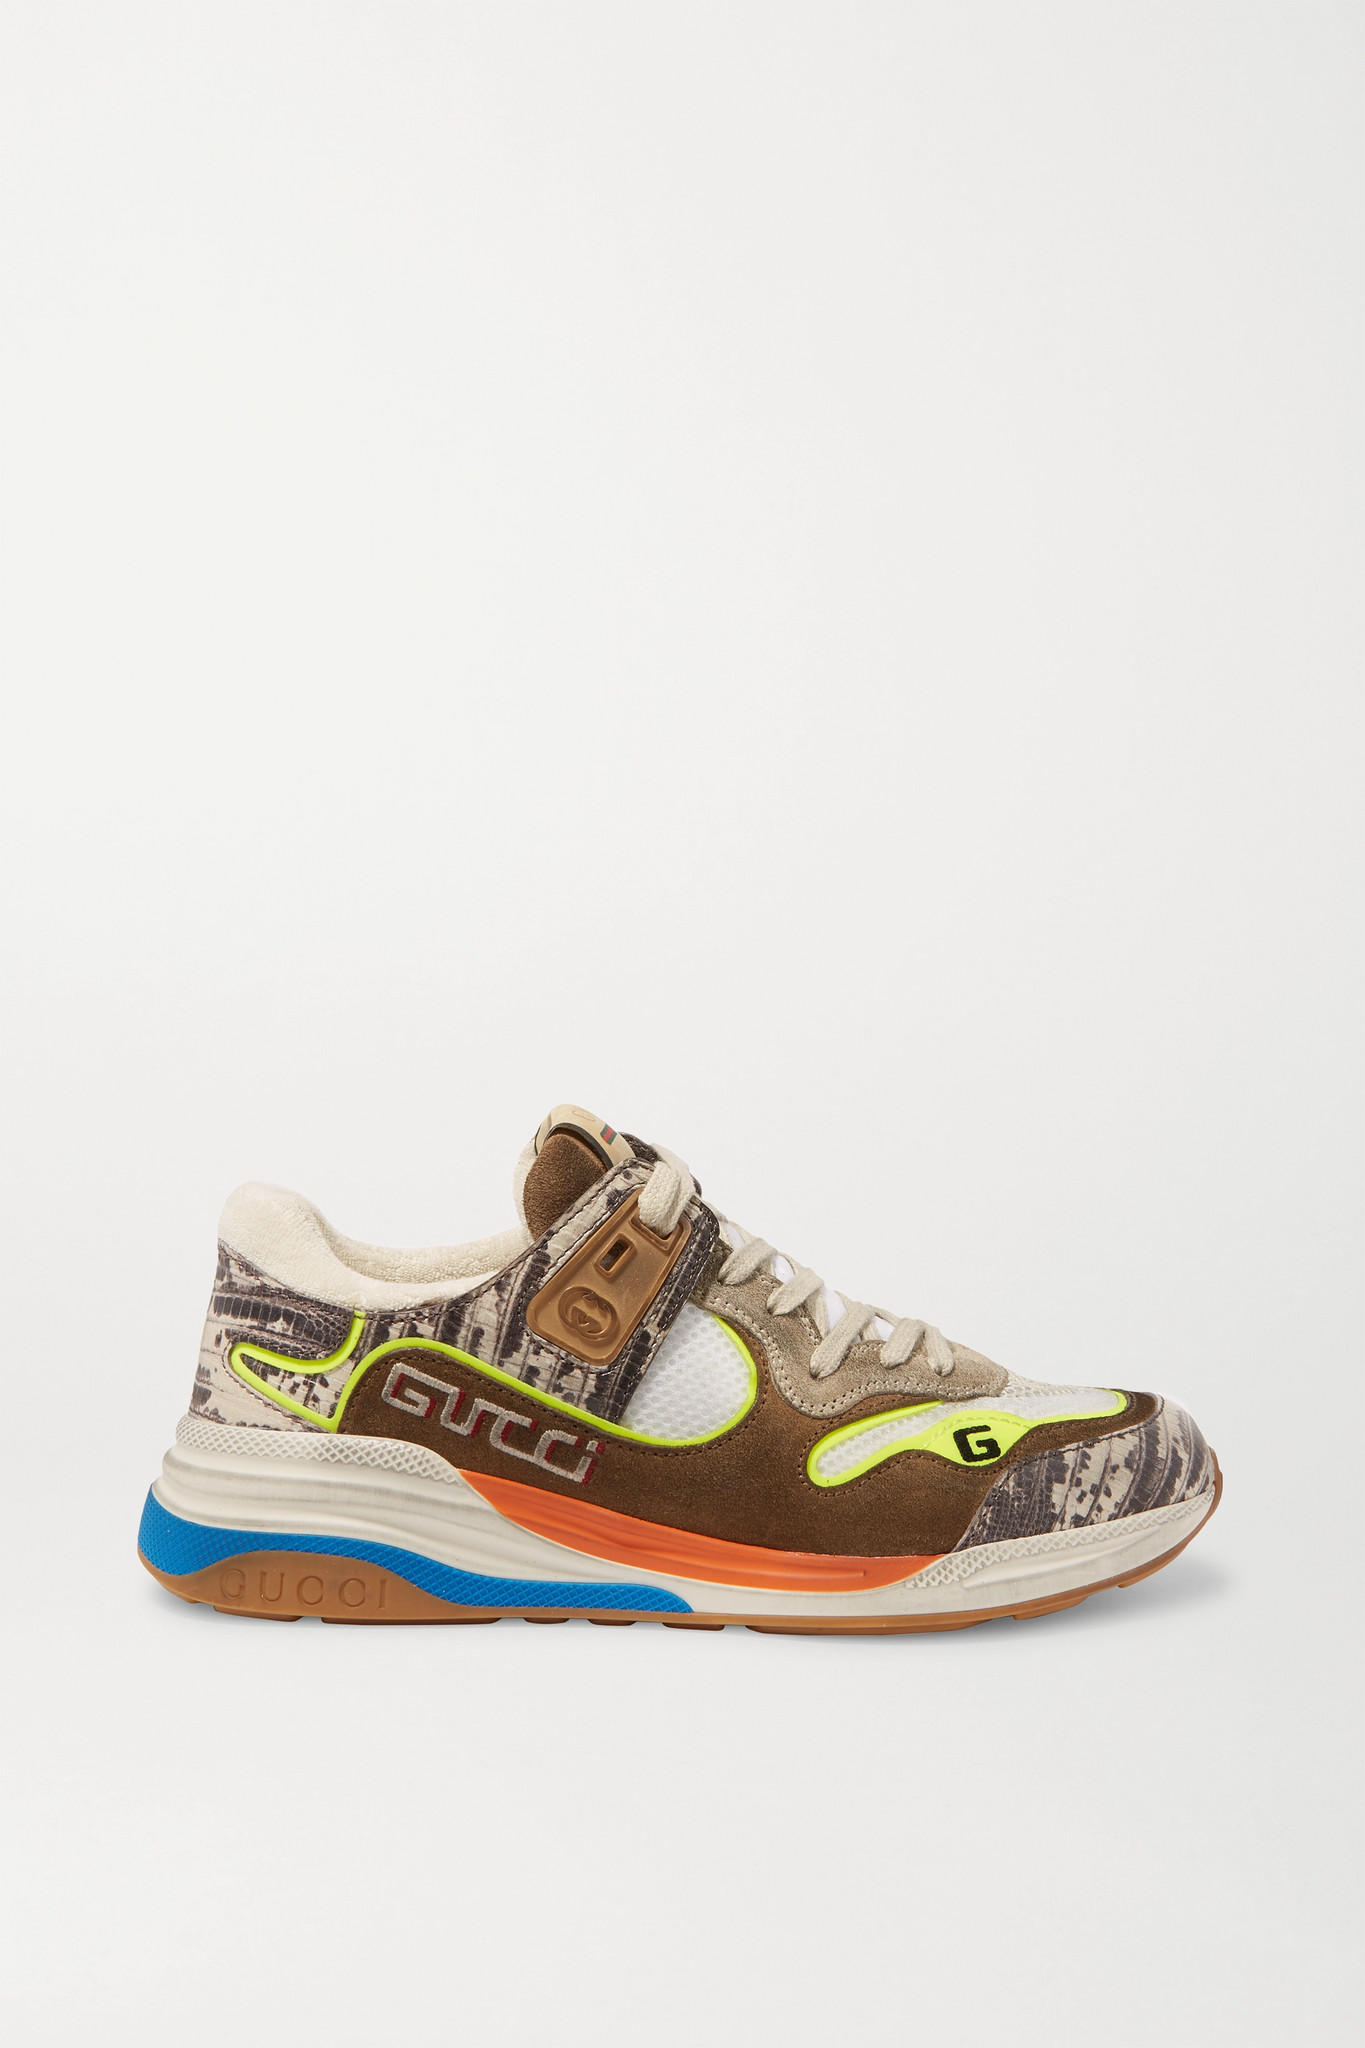 GUCCI - Ultrapace Snake-effect Leather, Mesh And Distressed Suede Sneakers - Brown - IT39.5